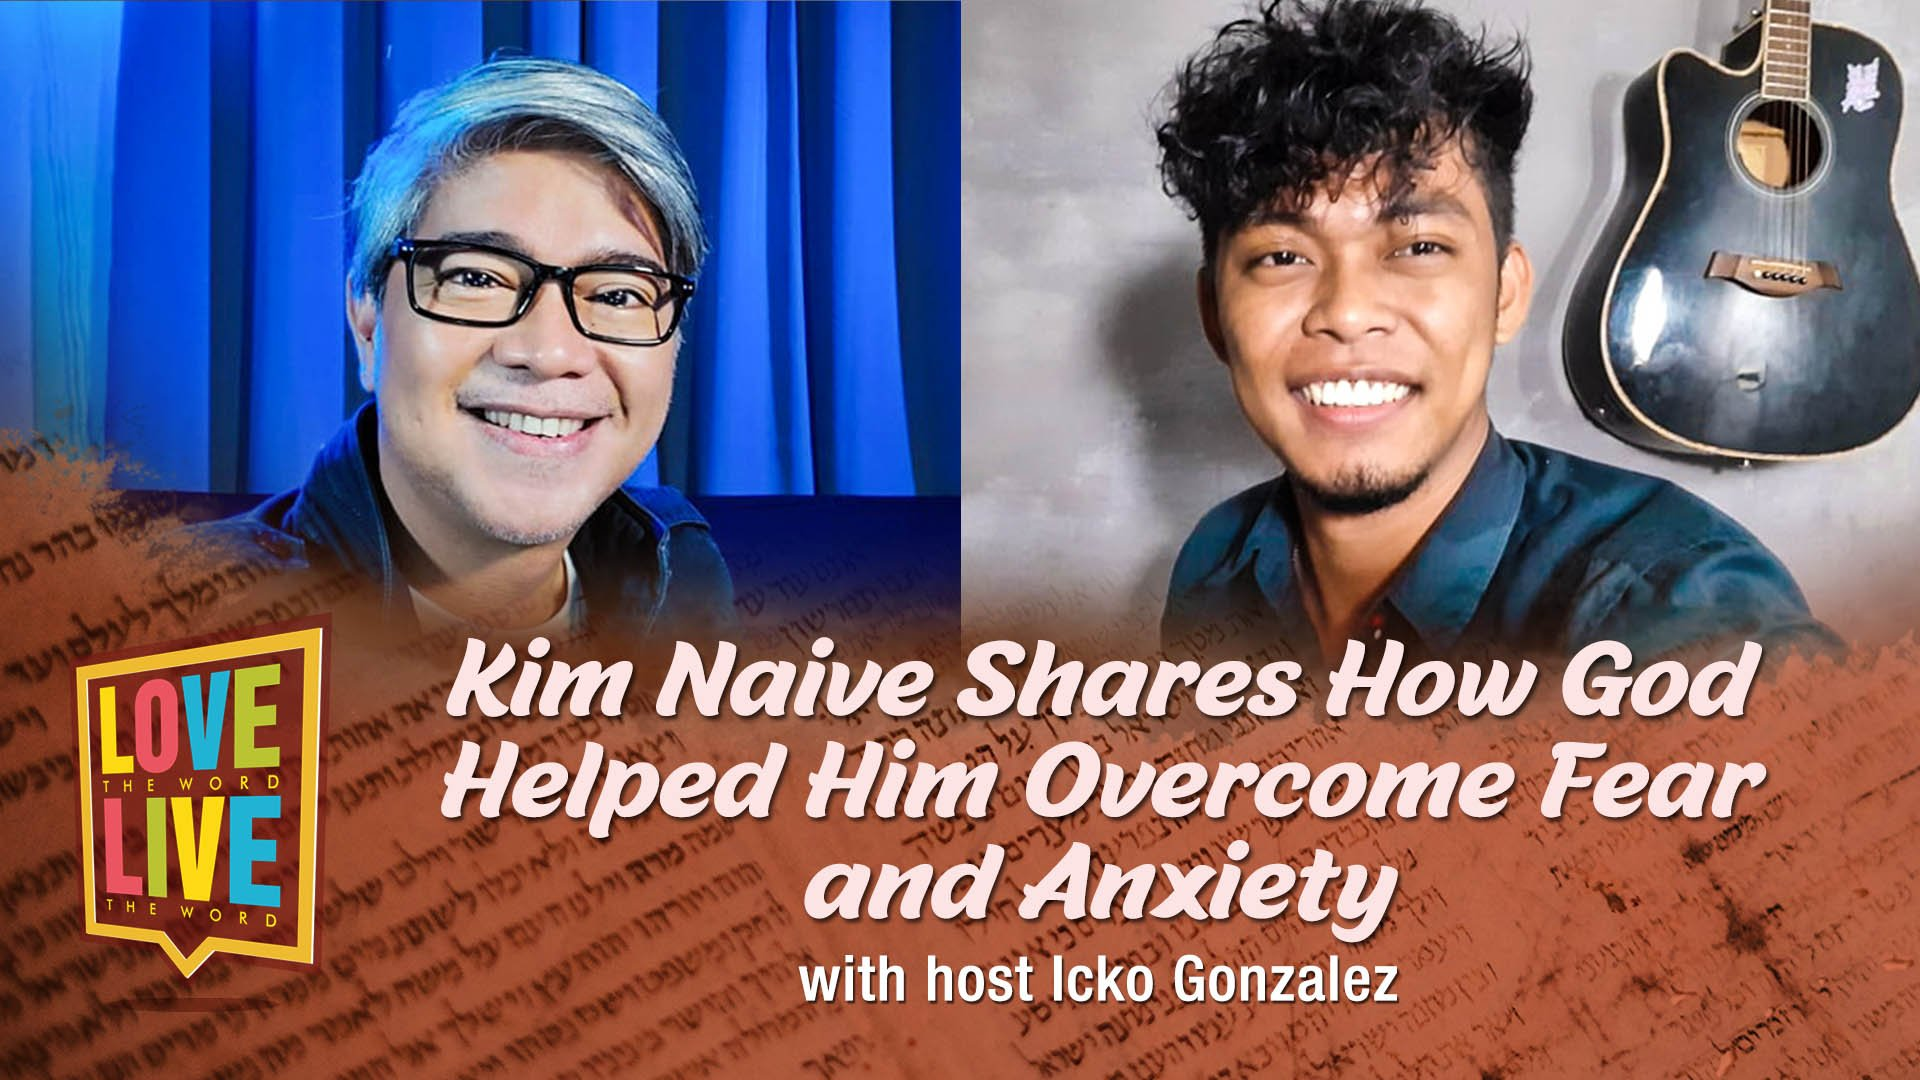 CBN Asia LIVE | Napa-paralyze ka ba ng Fear and Anxiety? | Love The Word, Live The Word